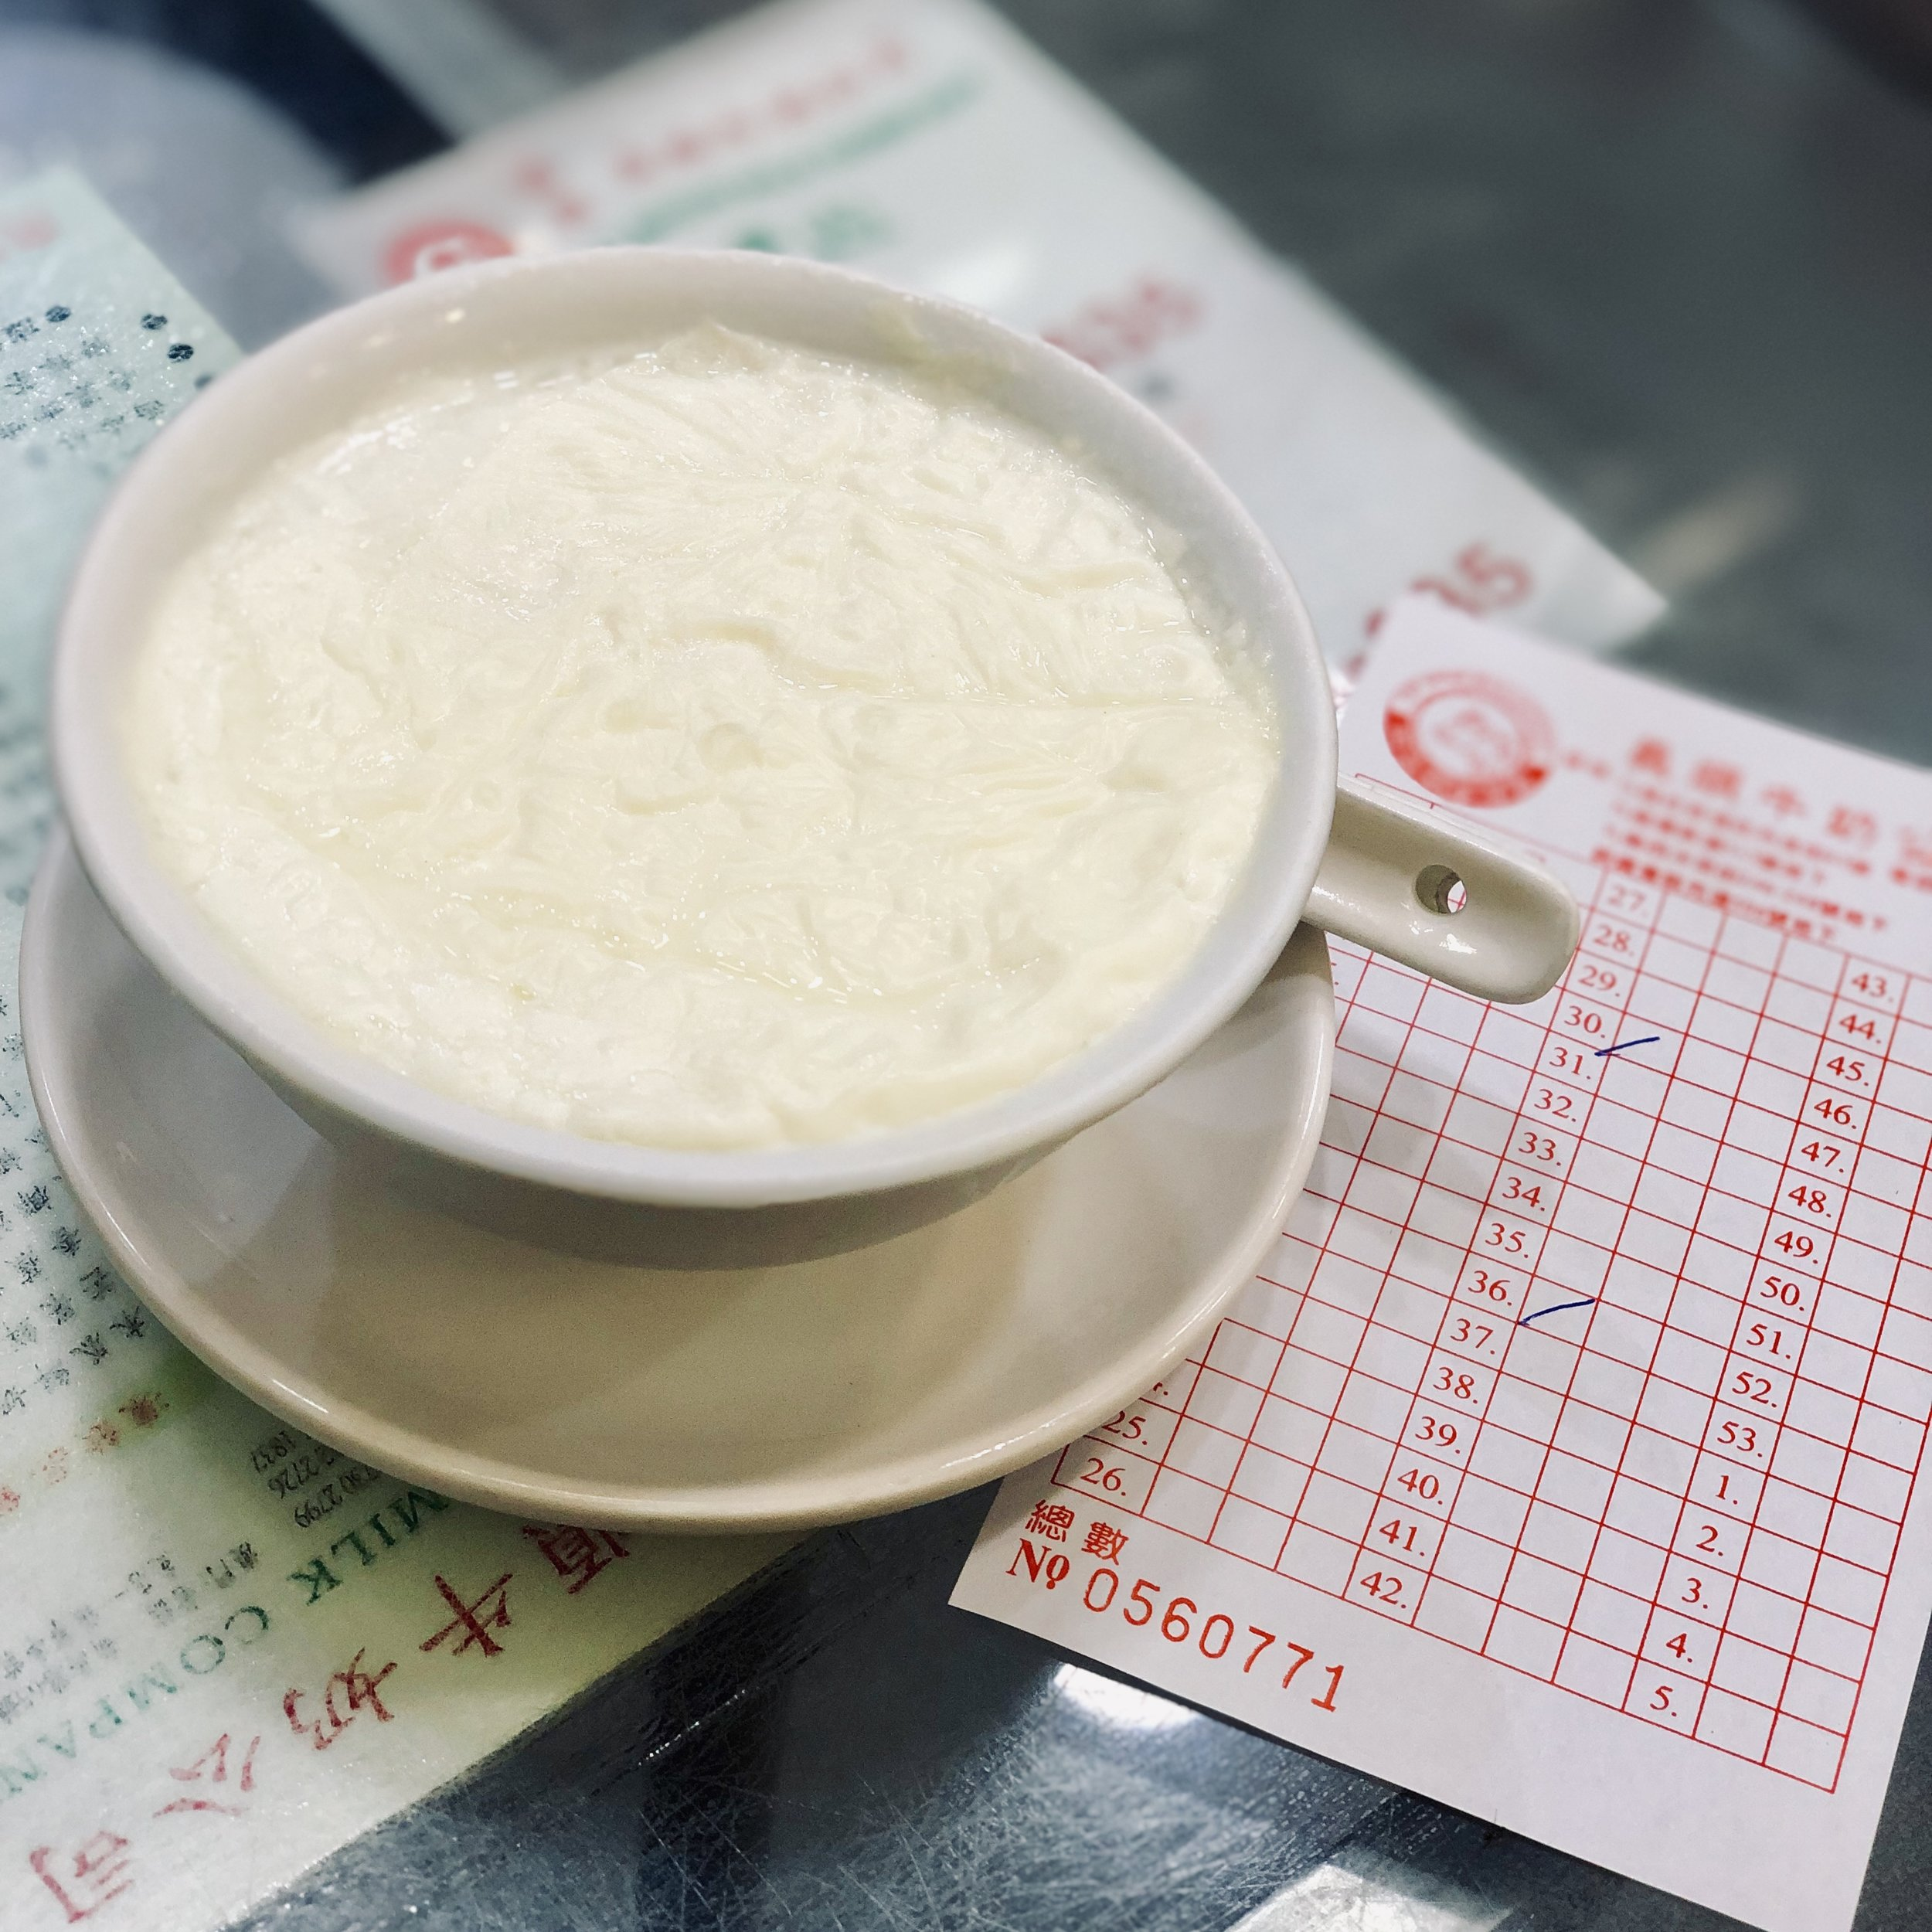 cold double film milk pudding at Yee Shun Milk Company